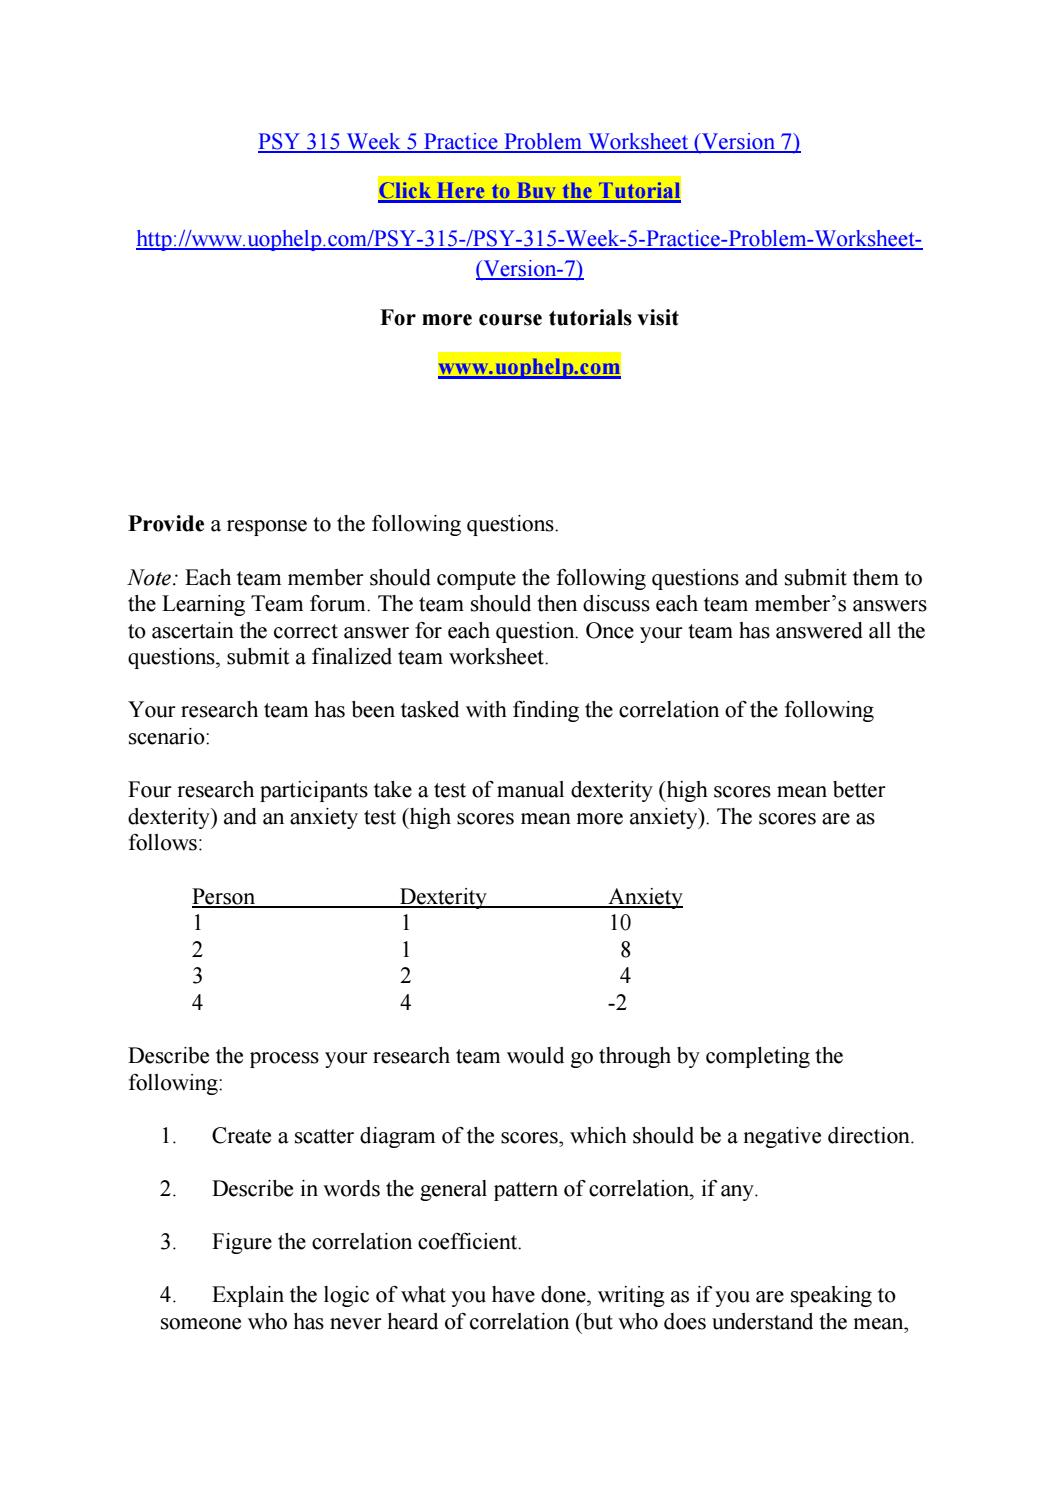 psy 315 week 3 practice answers Week two practice problems 1 psy/315 version 4 university of phoenix material 8n week two practice problems prepare a written response to the following questions.